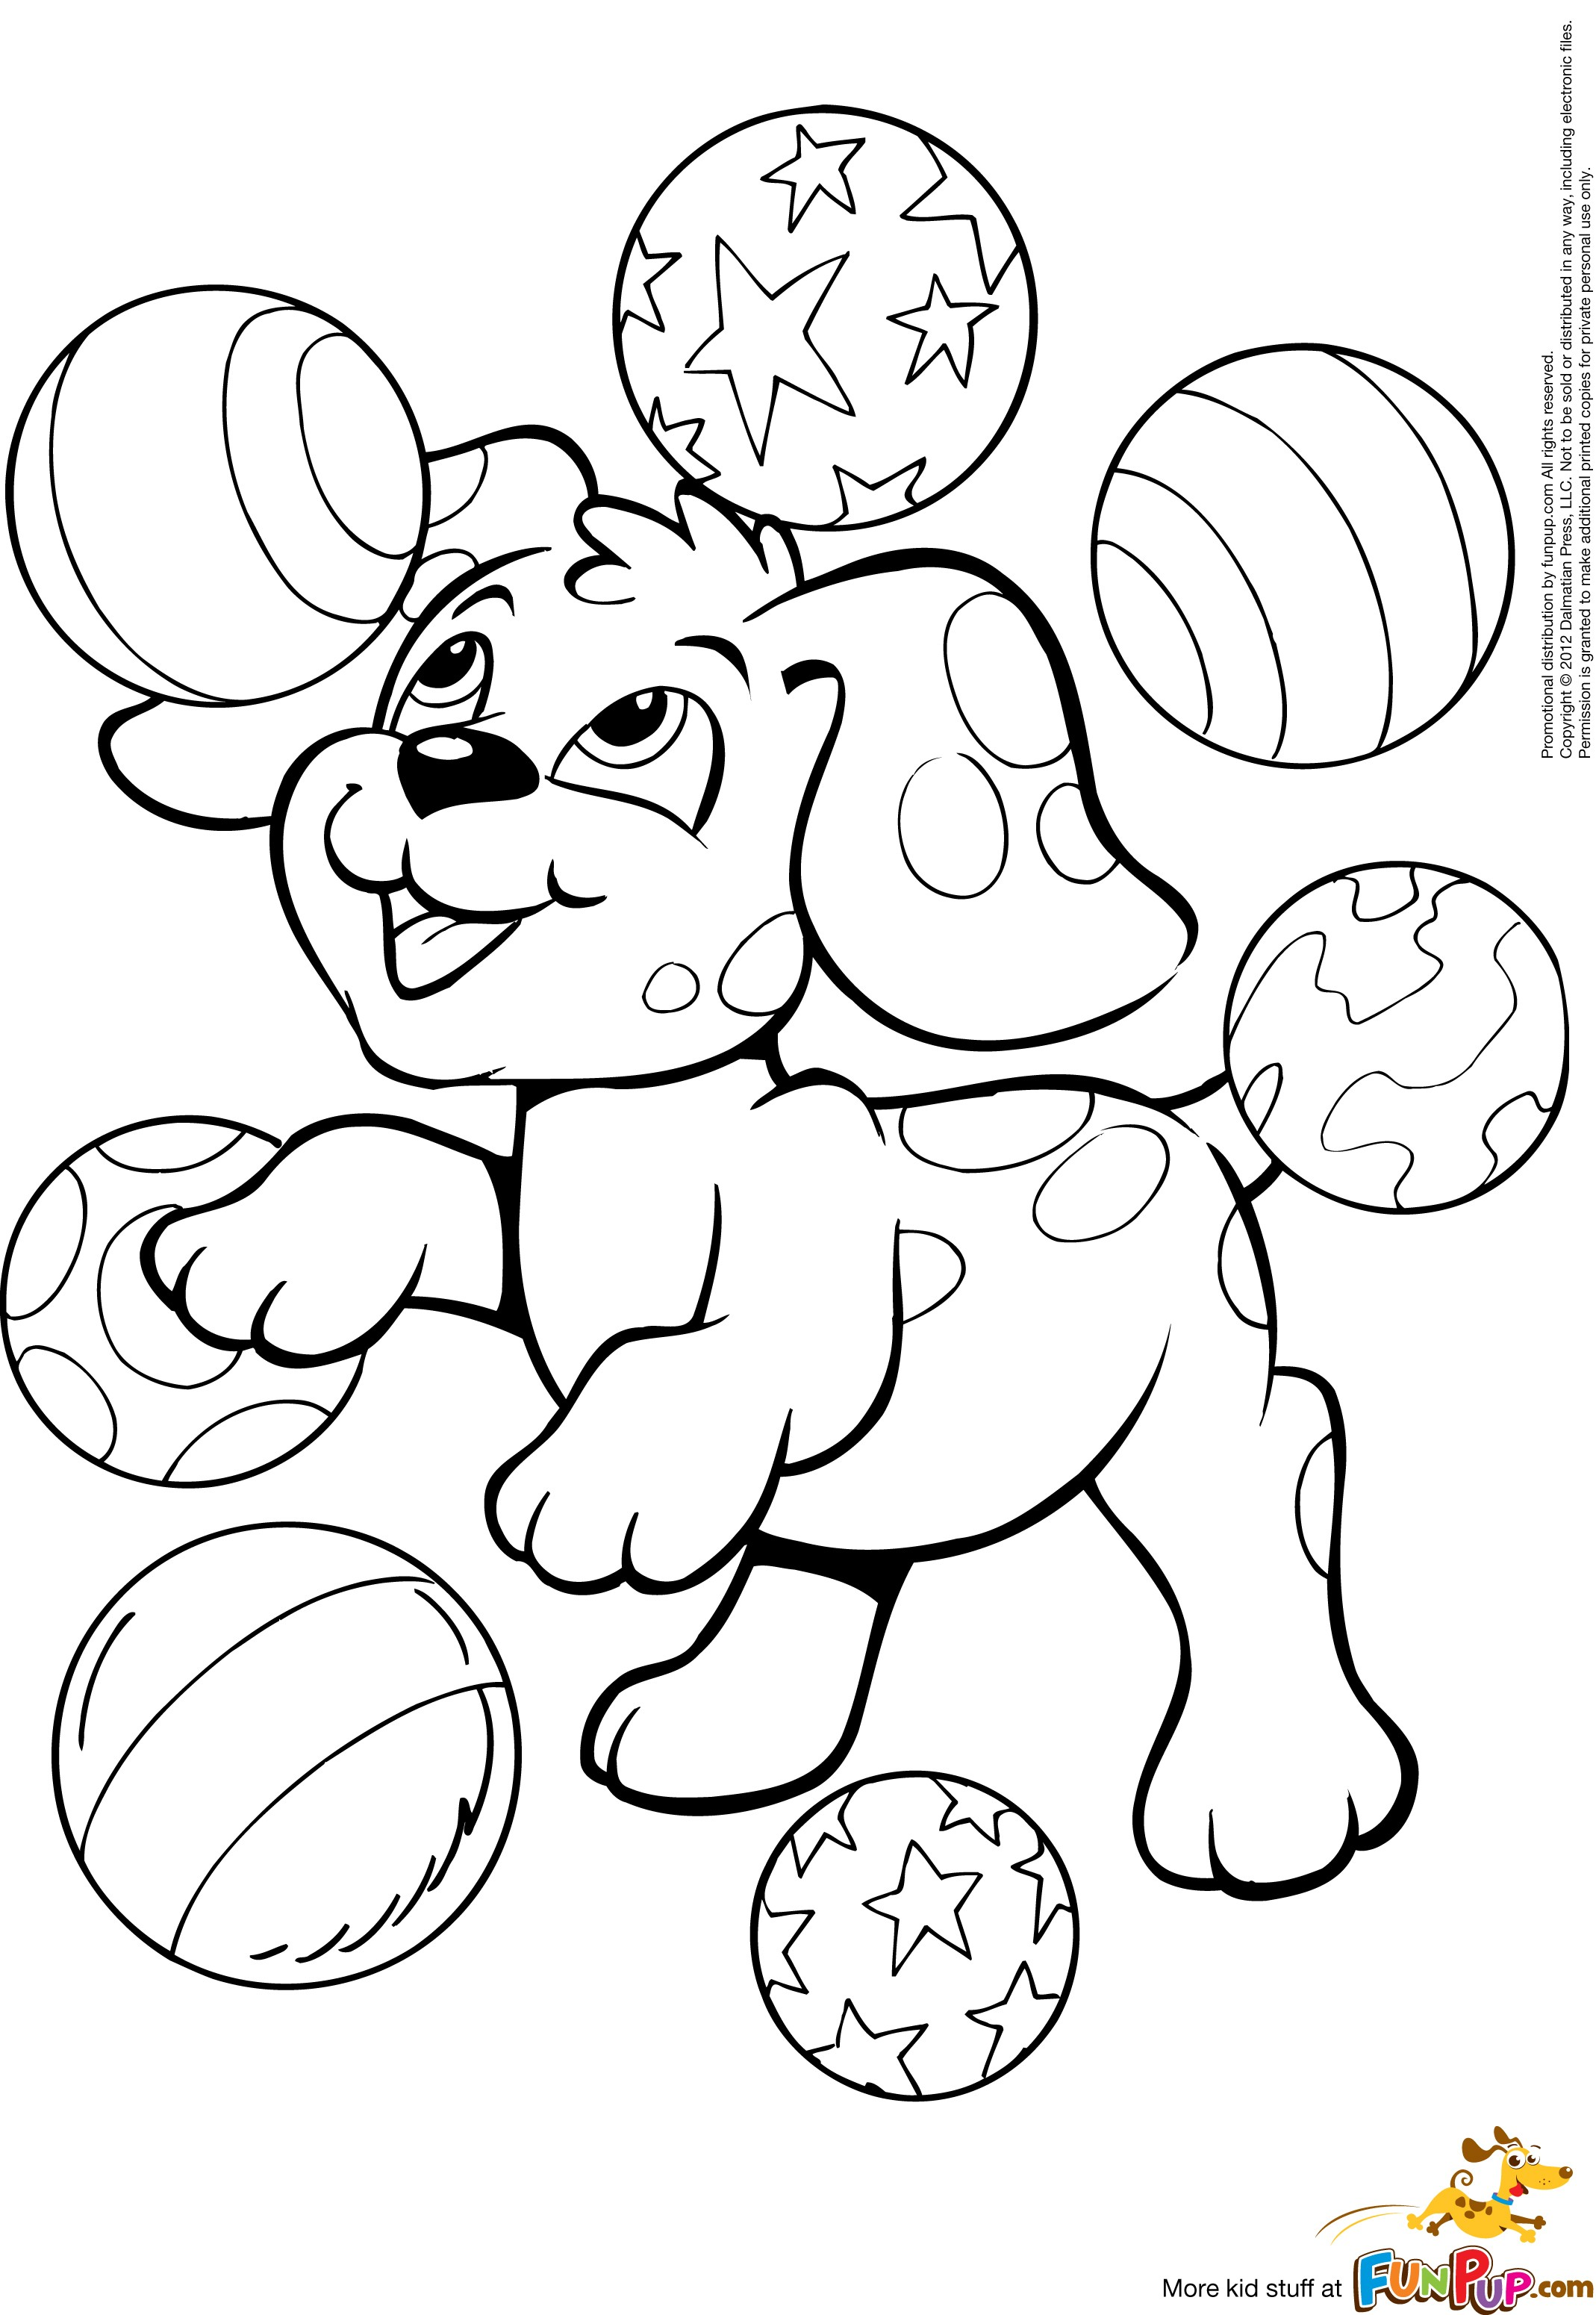 Coloring Pages Puppies Printables At Getdrawings